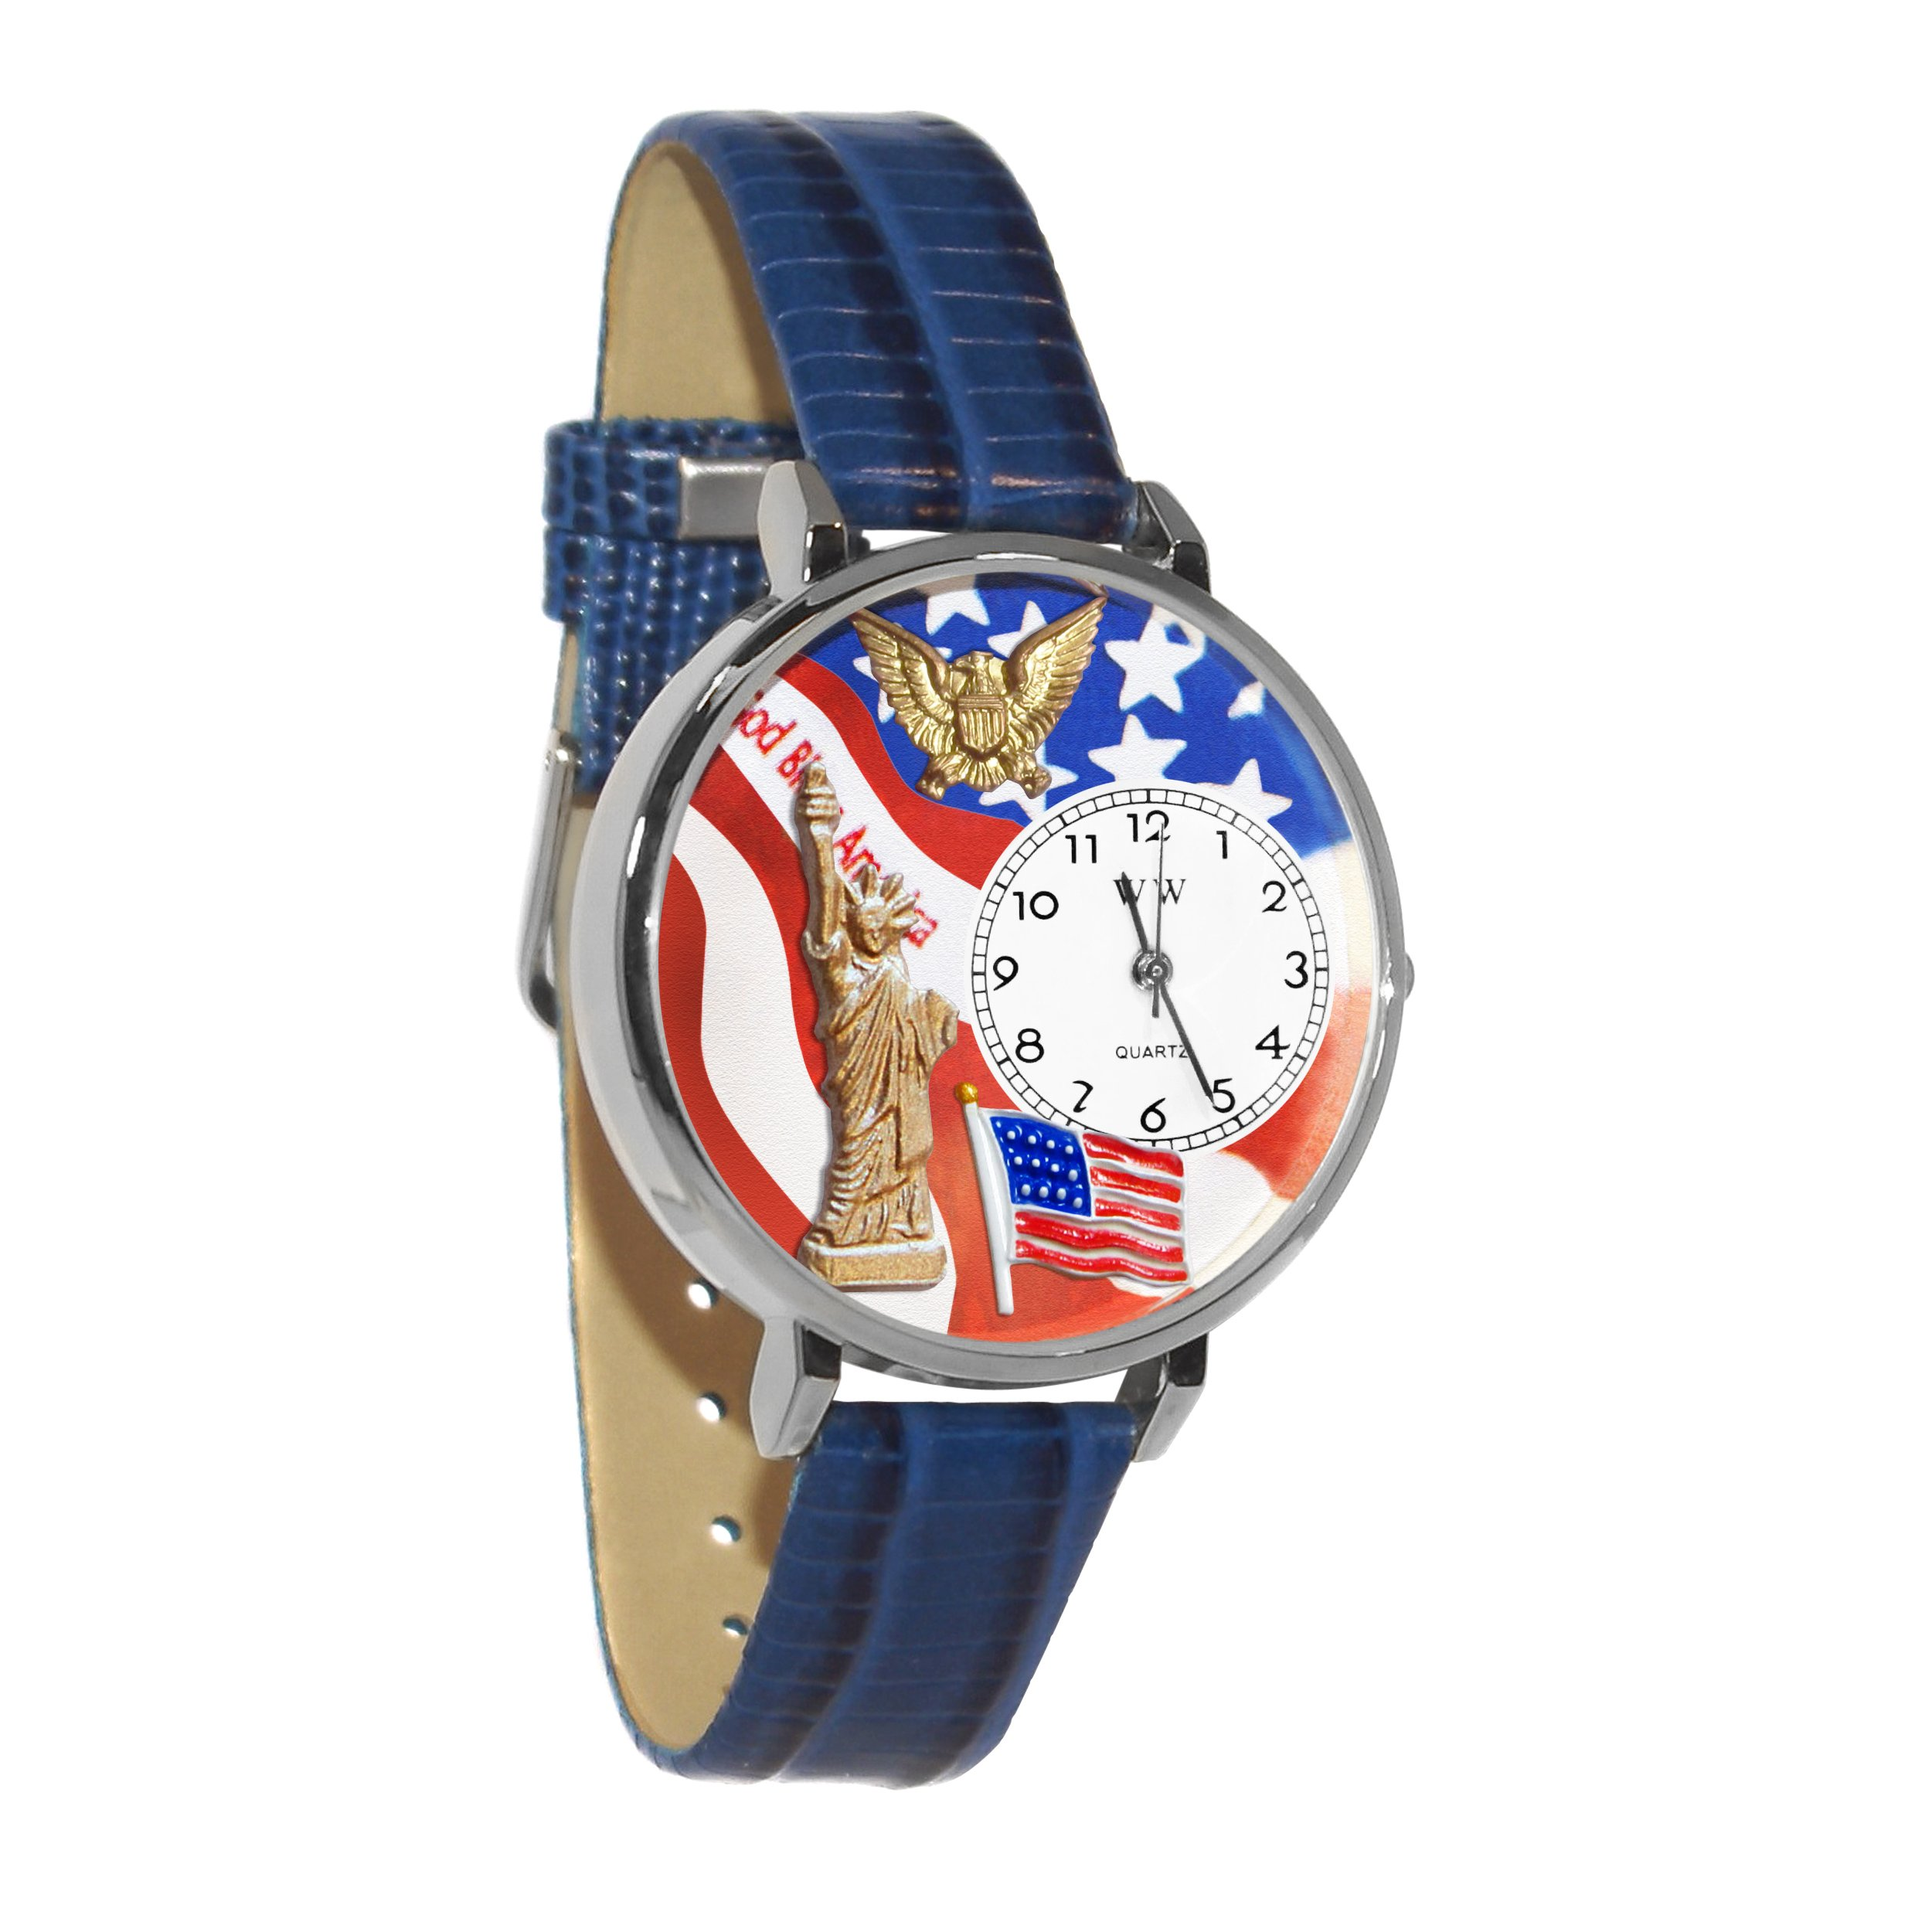 Whimsical Watches Unisex U1220022 July 4th Patriotic Navy Blue Leather Watch by Whimsical Watches (Image #1)